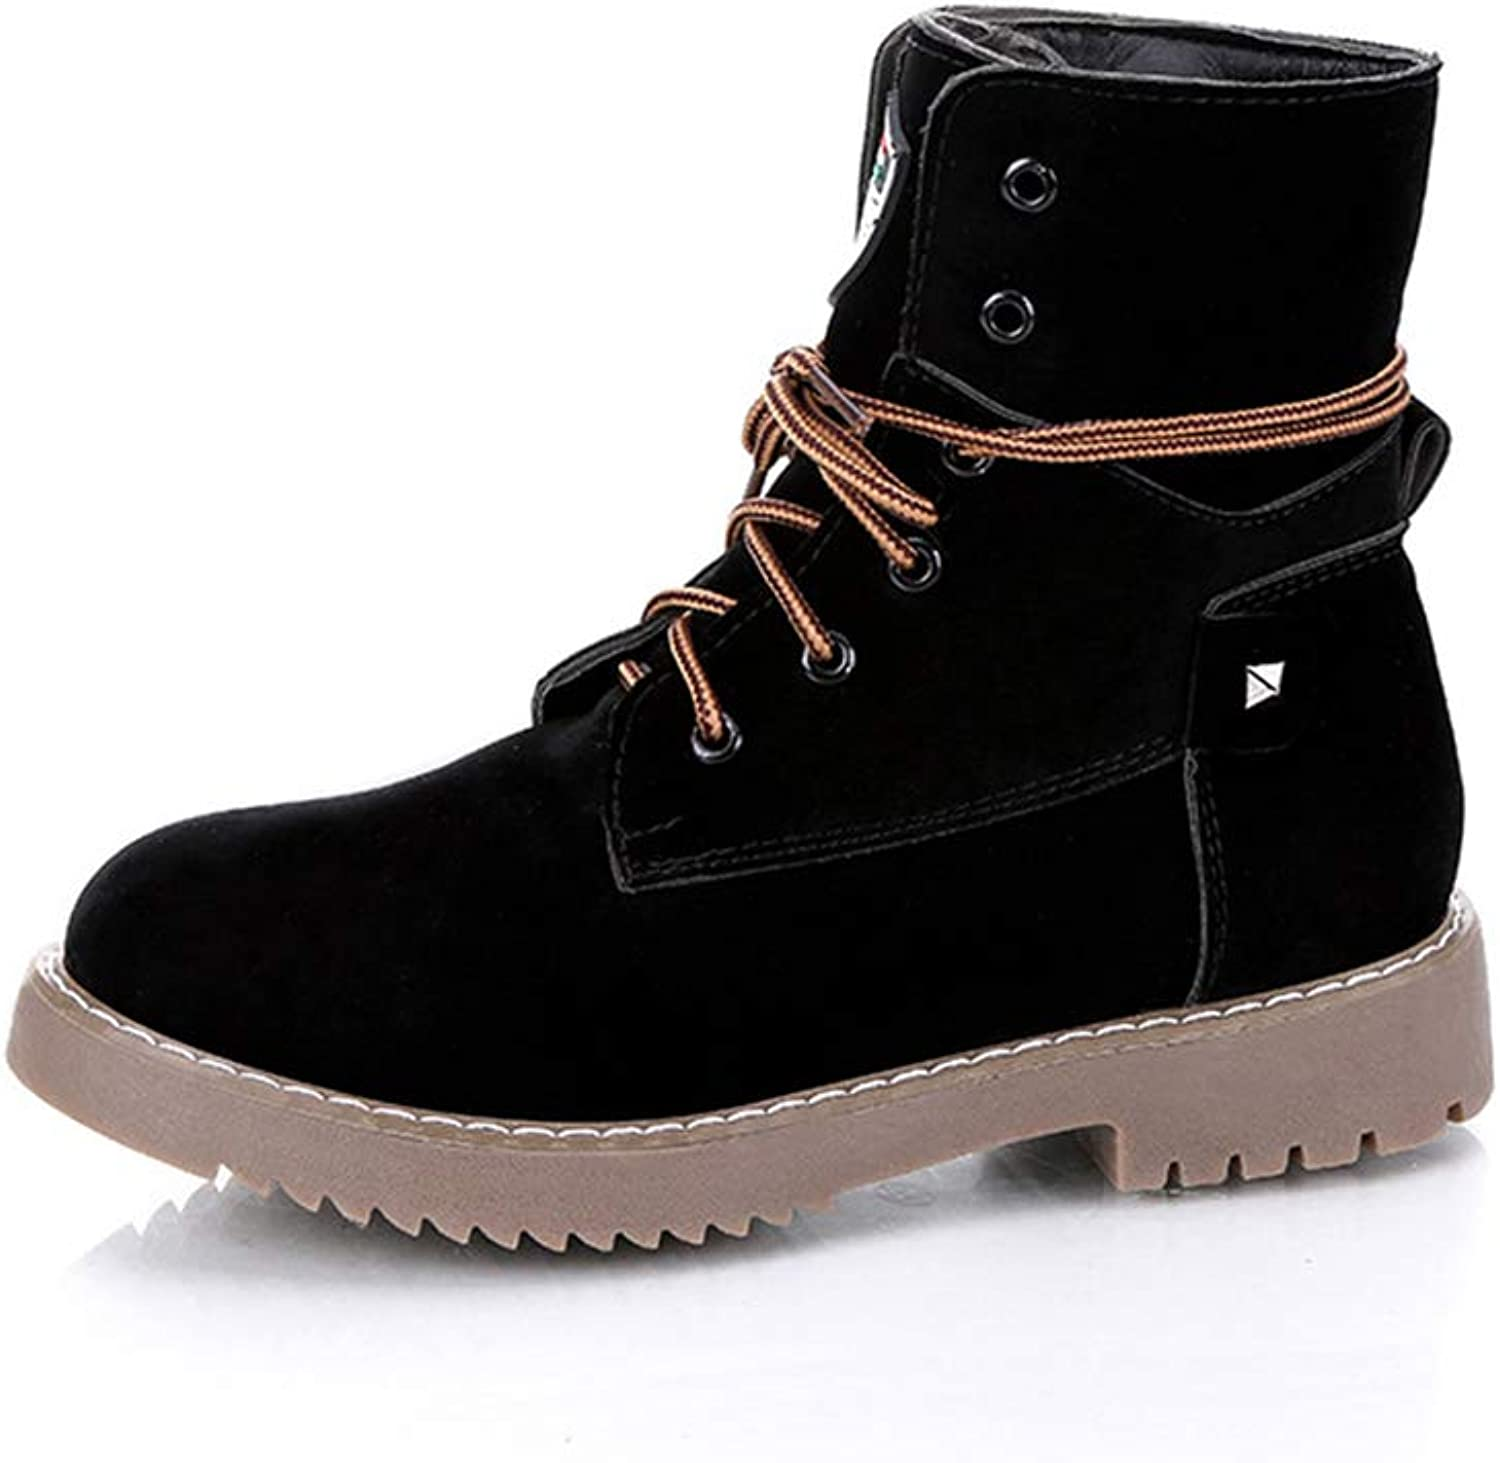 Btrada Women's Warm Martin Boots Student Casual Lace-up Ankle Boots for Autumn Winter Anti-Slip Booties